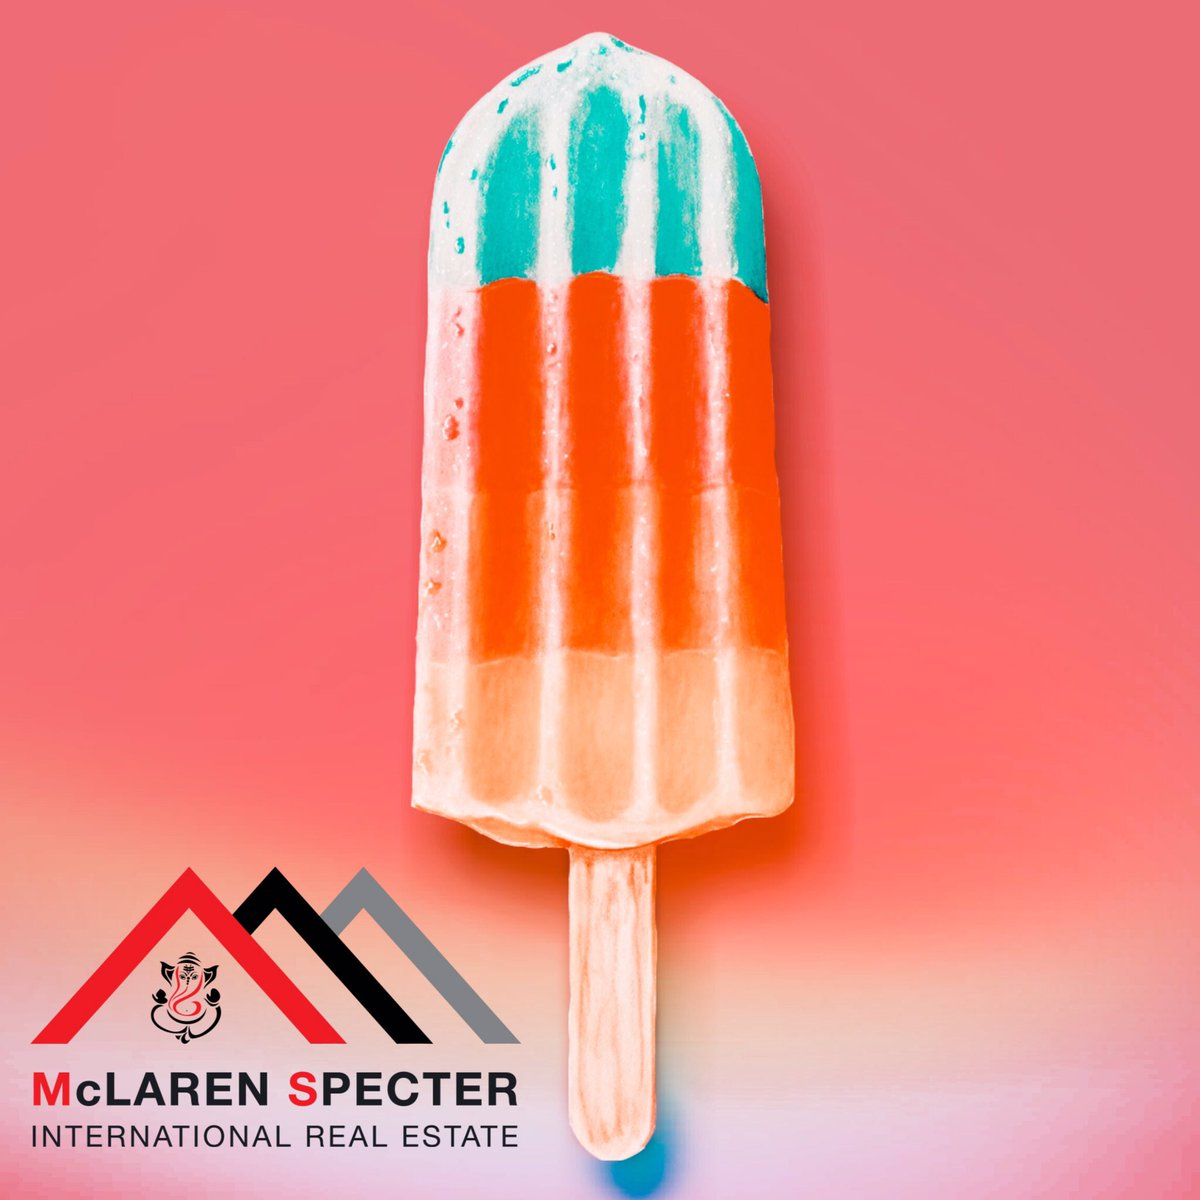 Which Ice Lolly do you prefer ? Fruit Pastilles, Rocket, Fab etc   #london #chelsea #kensington  #flats #qatar #westminster #knightsbridge  #realestate  #canarywharf #city #dubai #uae #uaefashion  #usa #belgravia #saudiarabia #Bahrain  #mayfair #roundtree #walls #icecream #lolly